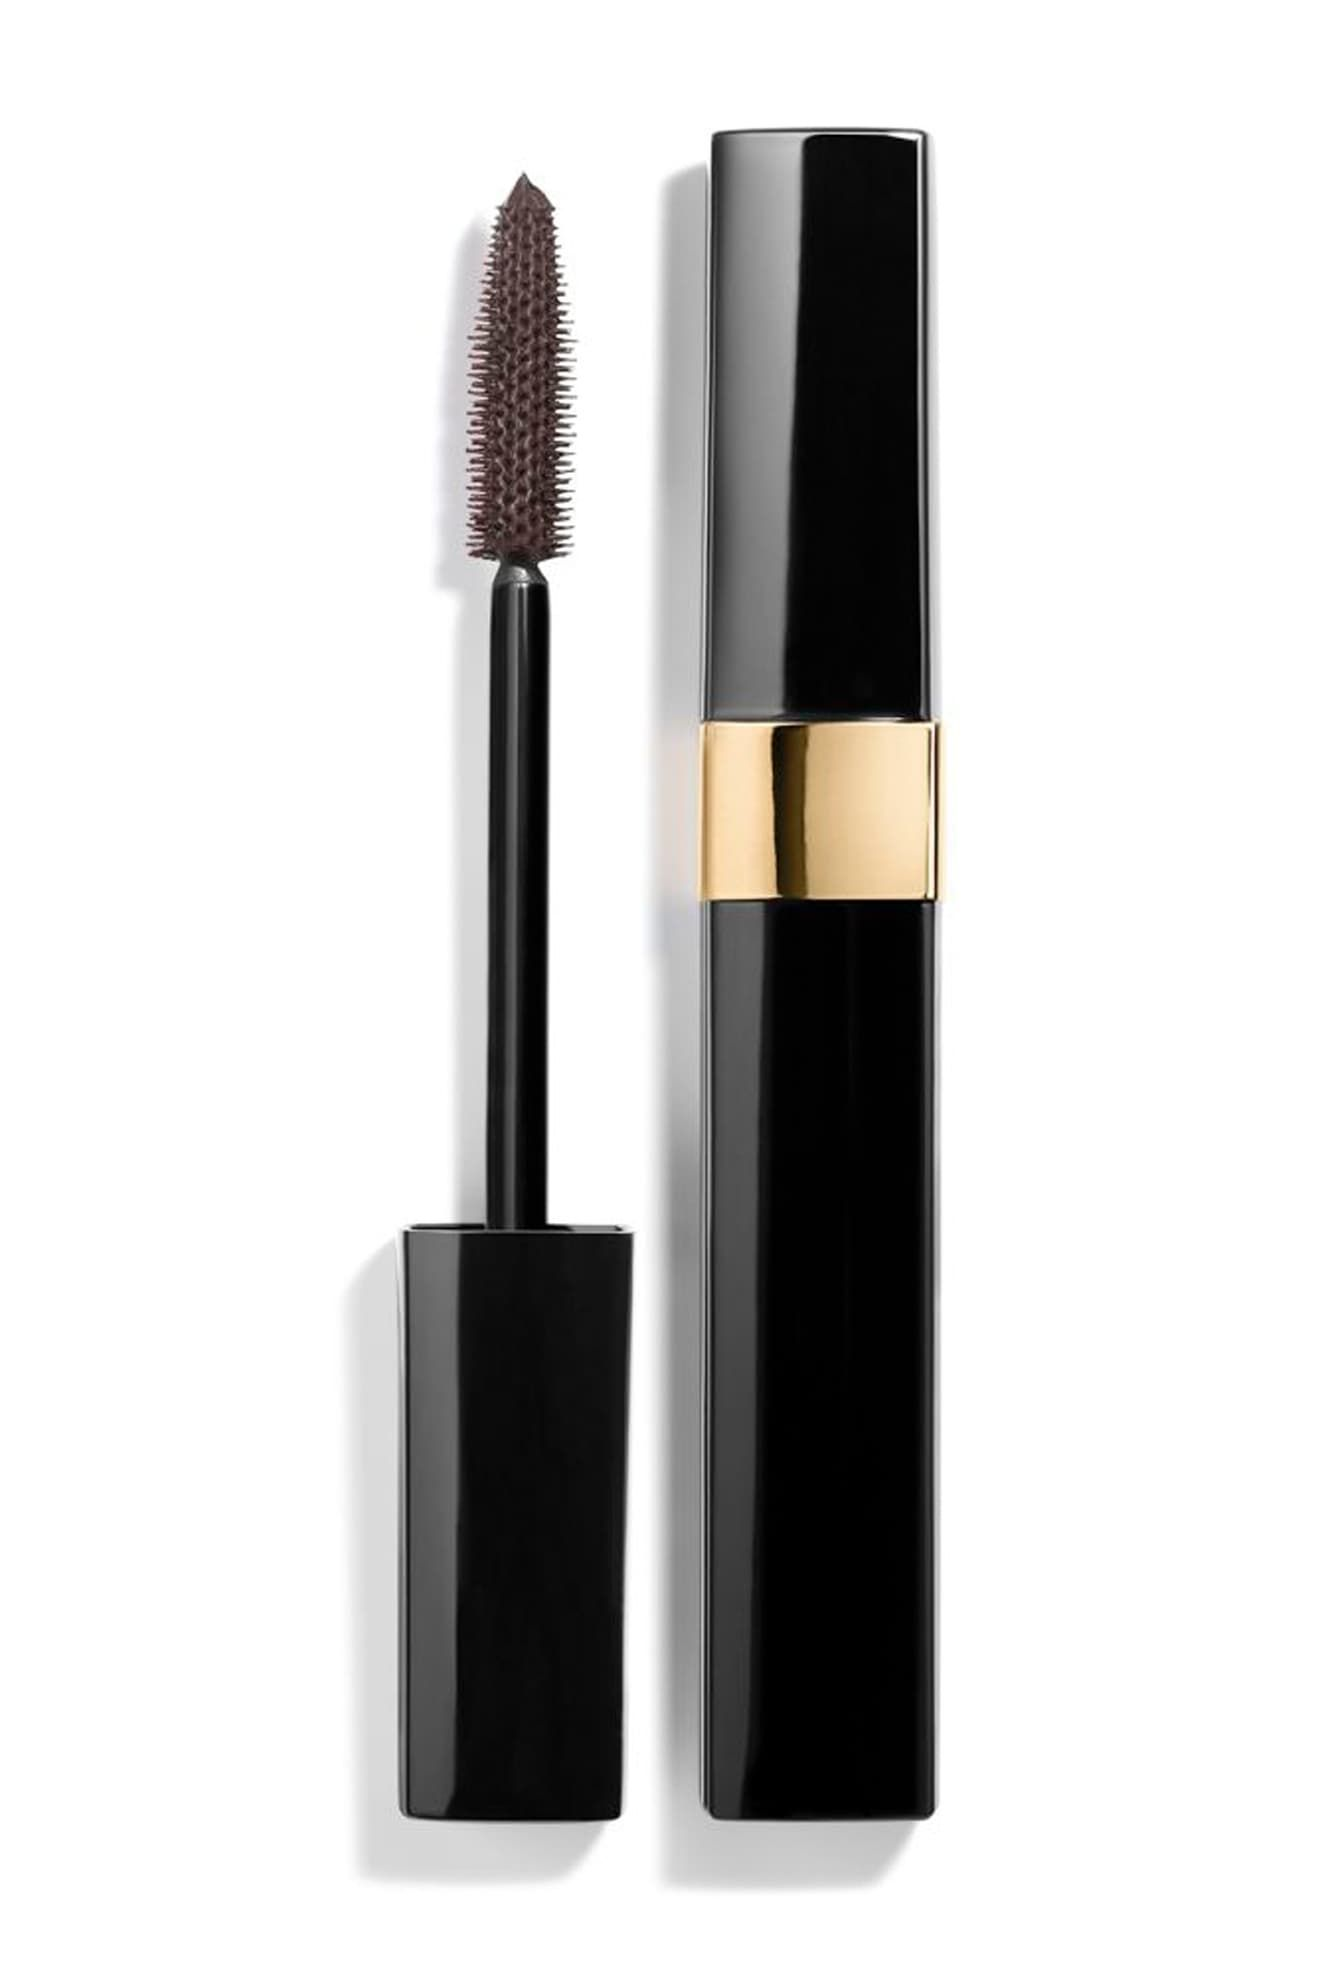 """Inimitable Mascara Volume CHANEL nordstrom.com $32.00 SHOP NOW """"My stubbornly straight, short, downcast lashes can't hold a curl. Whatever lift I get from a lash curler immediately drops after a single coat of mascara. It's maddening! This tube from Chanel is the only one I've tried that doesn't cause my lashes to droop. Now that I've moved on to lash lifts , I get even more out of the separating, lengthening, and volumizing formula. A friend actually asked if I was wearing falsies—that says it all."""" — Kristina Rodulfo, Senior Beauty Editor"""